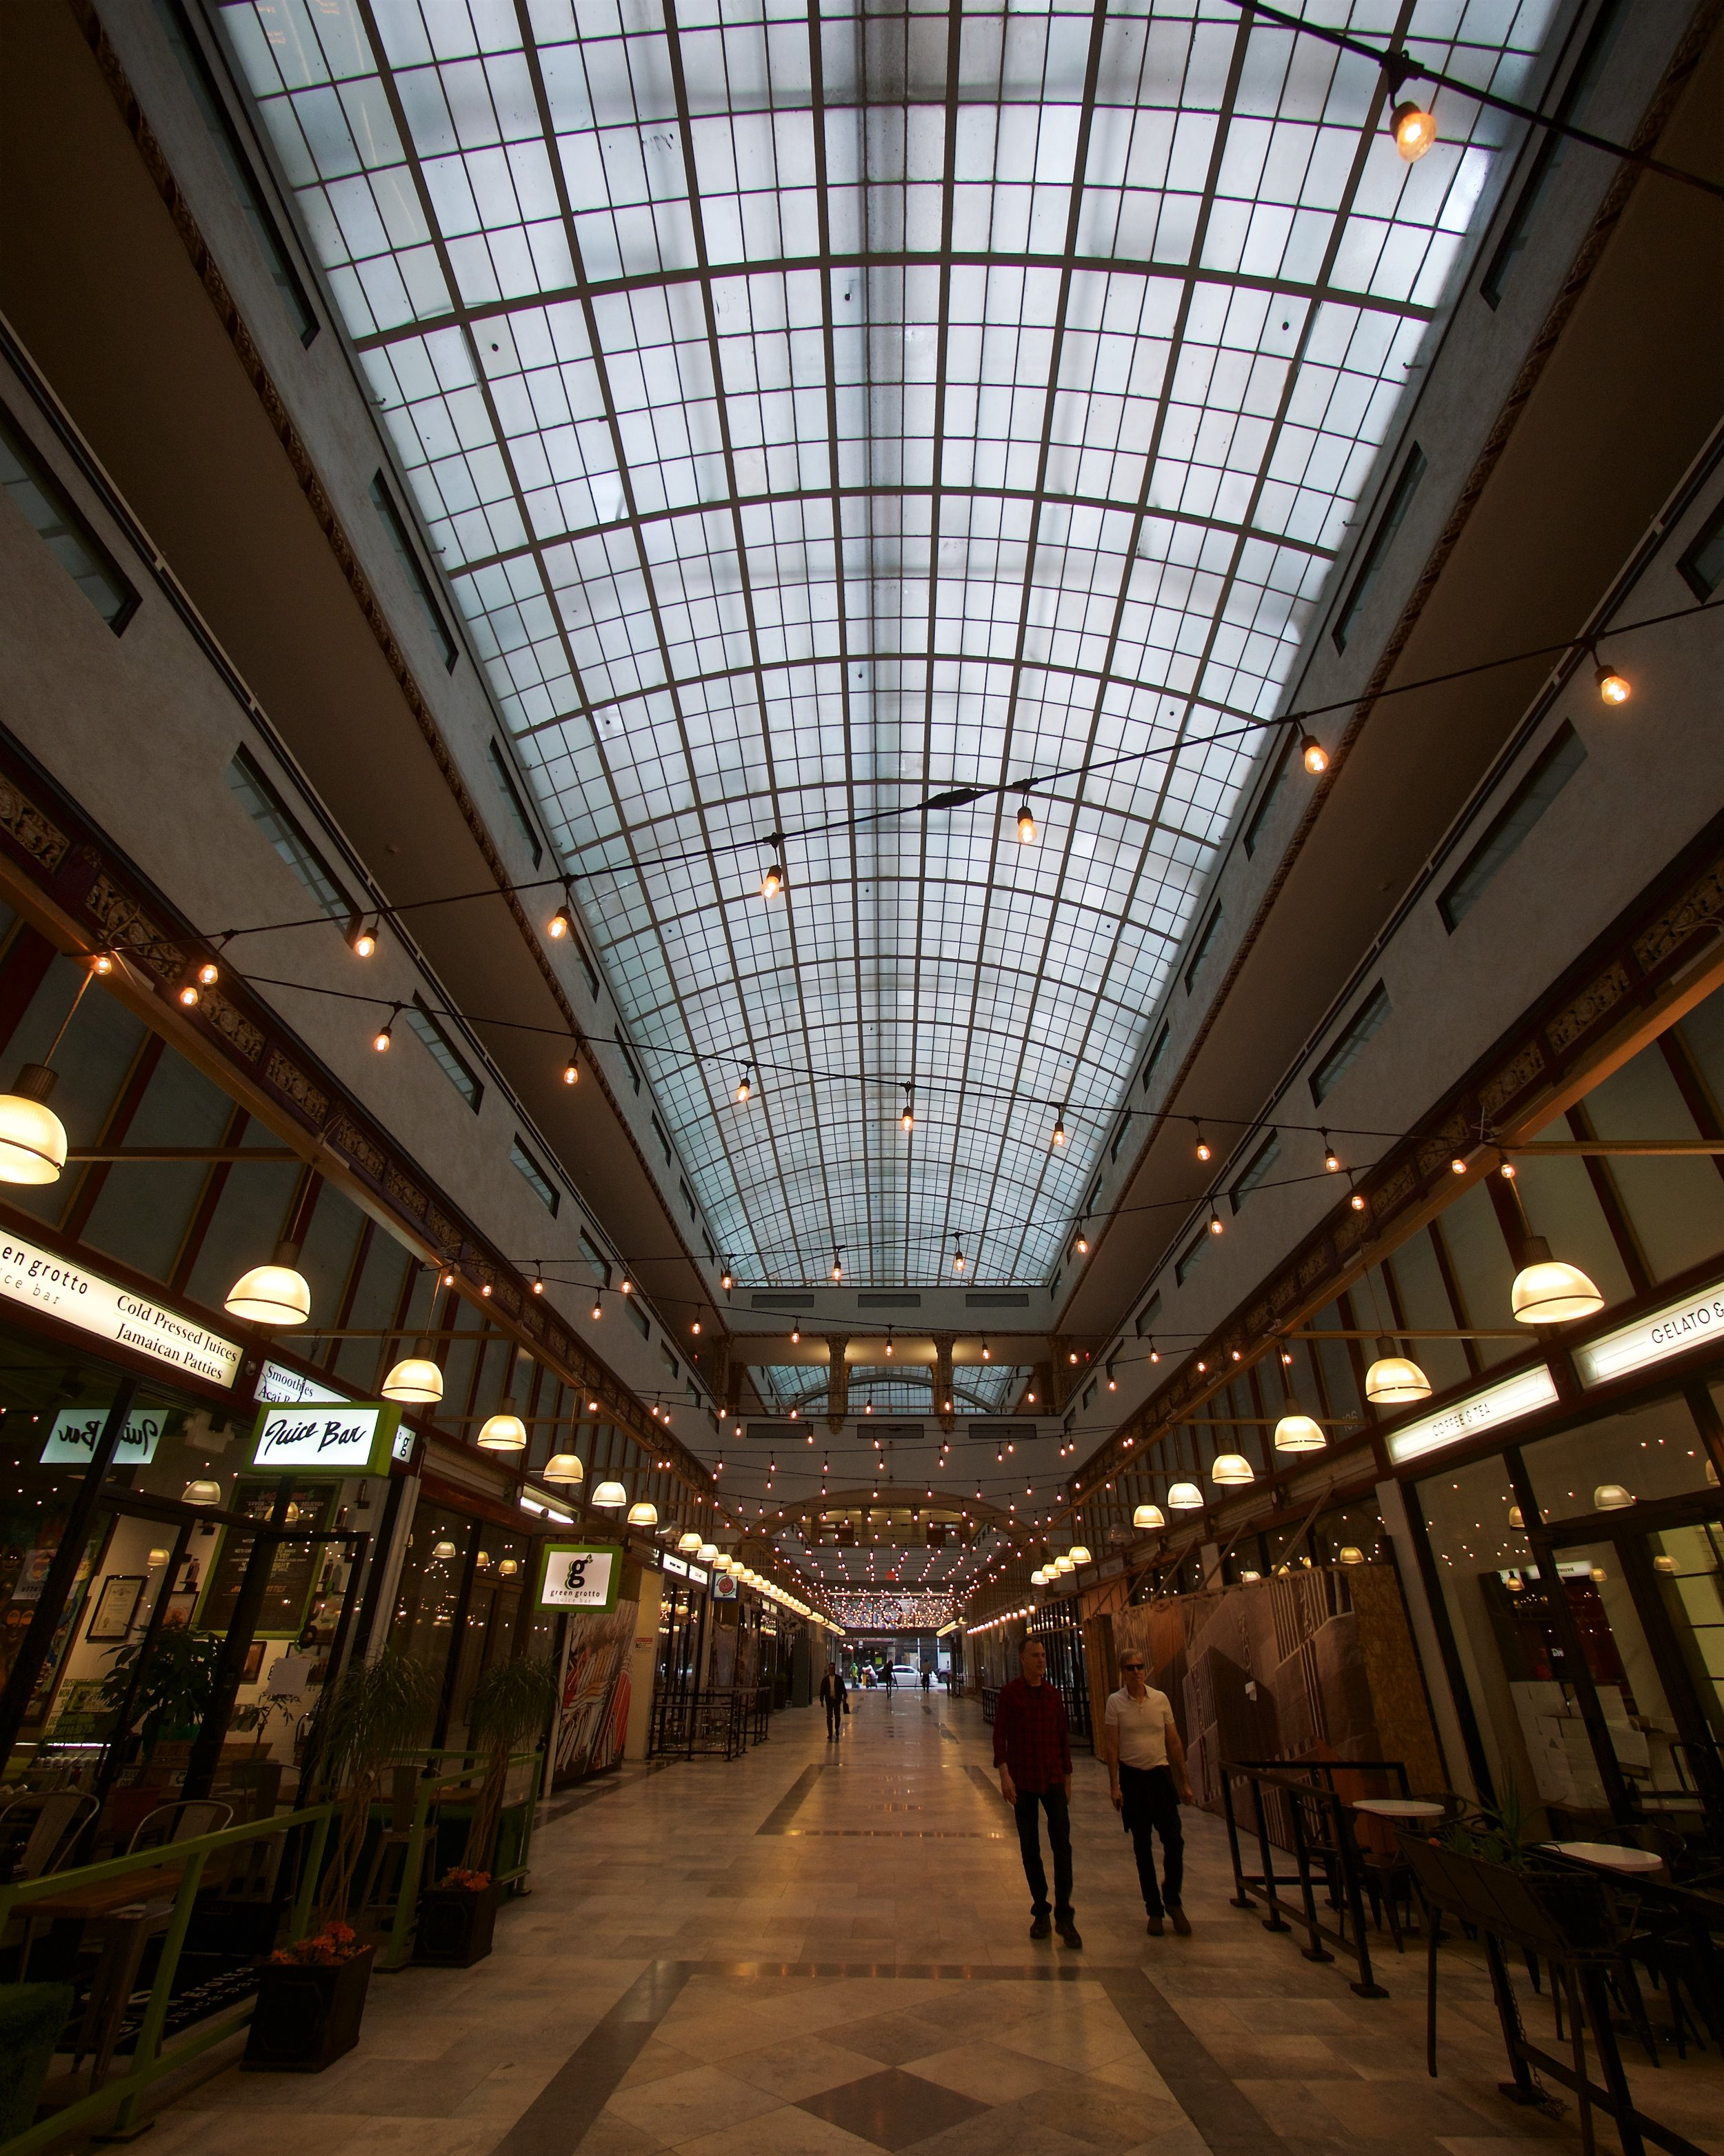 The Spring Arcade connects two twelve-story office buildings, one facing Spring, the other Broadway